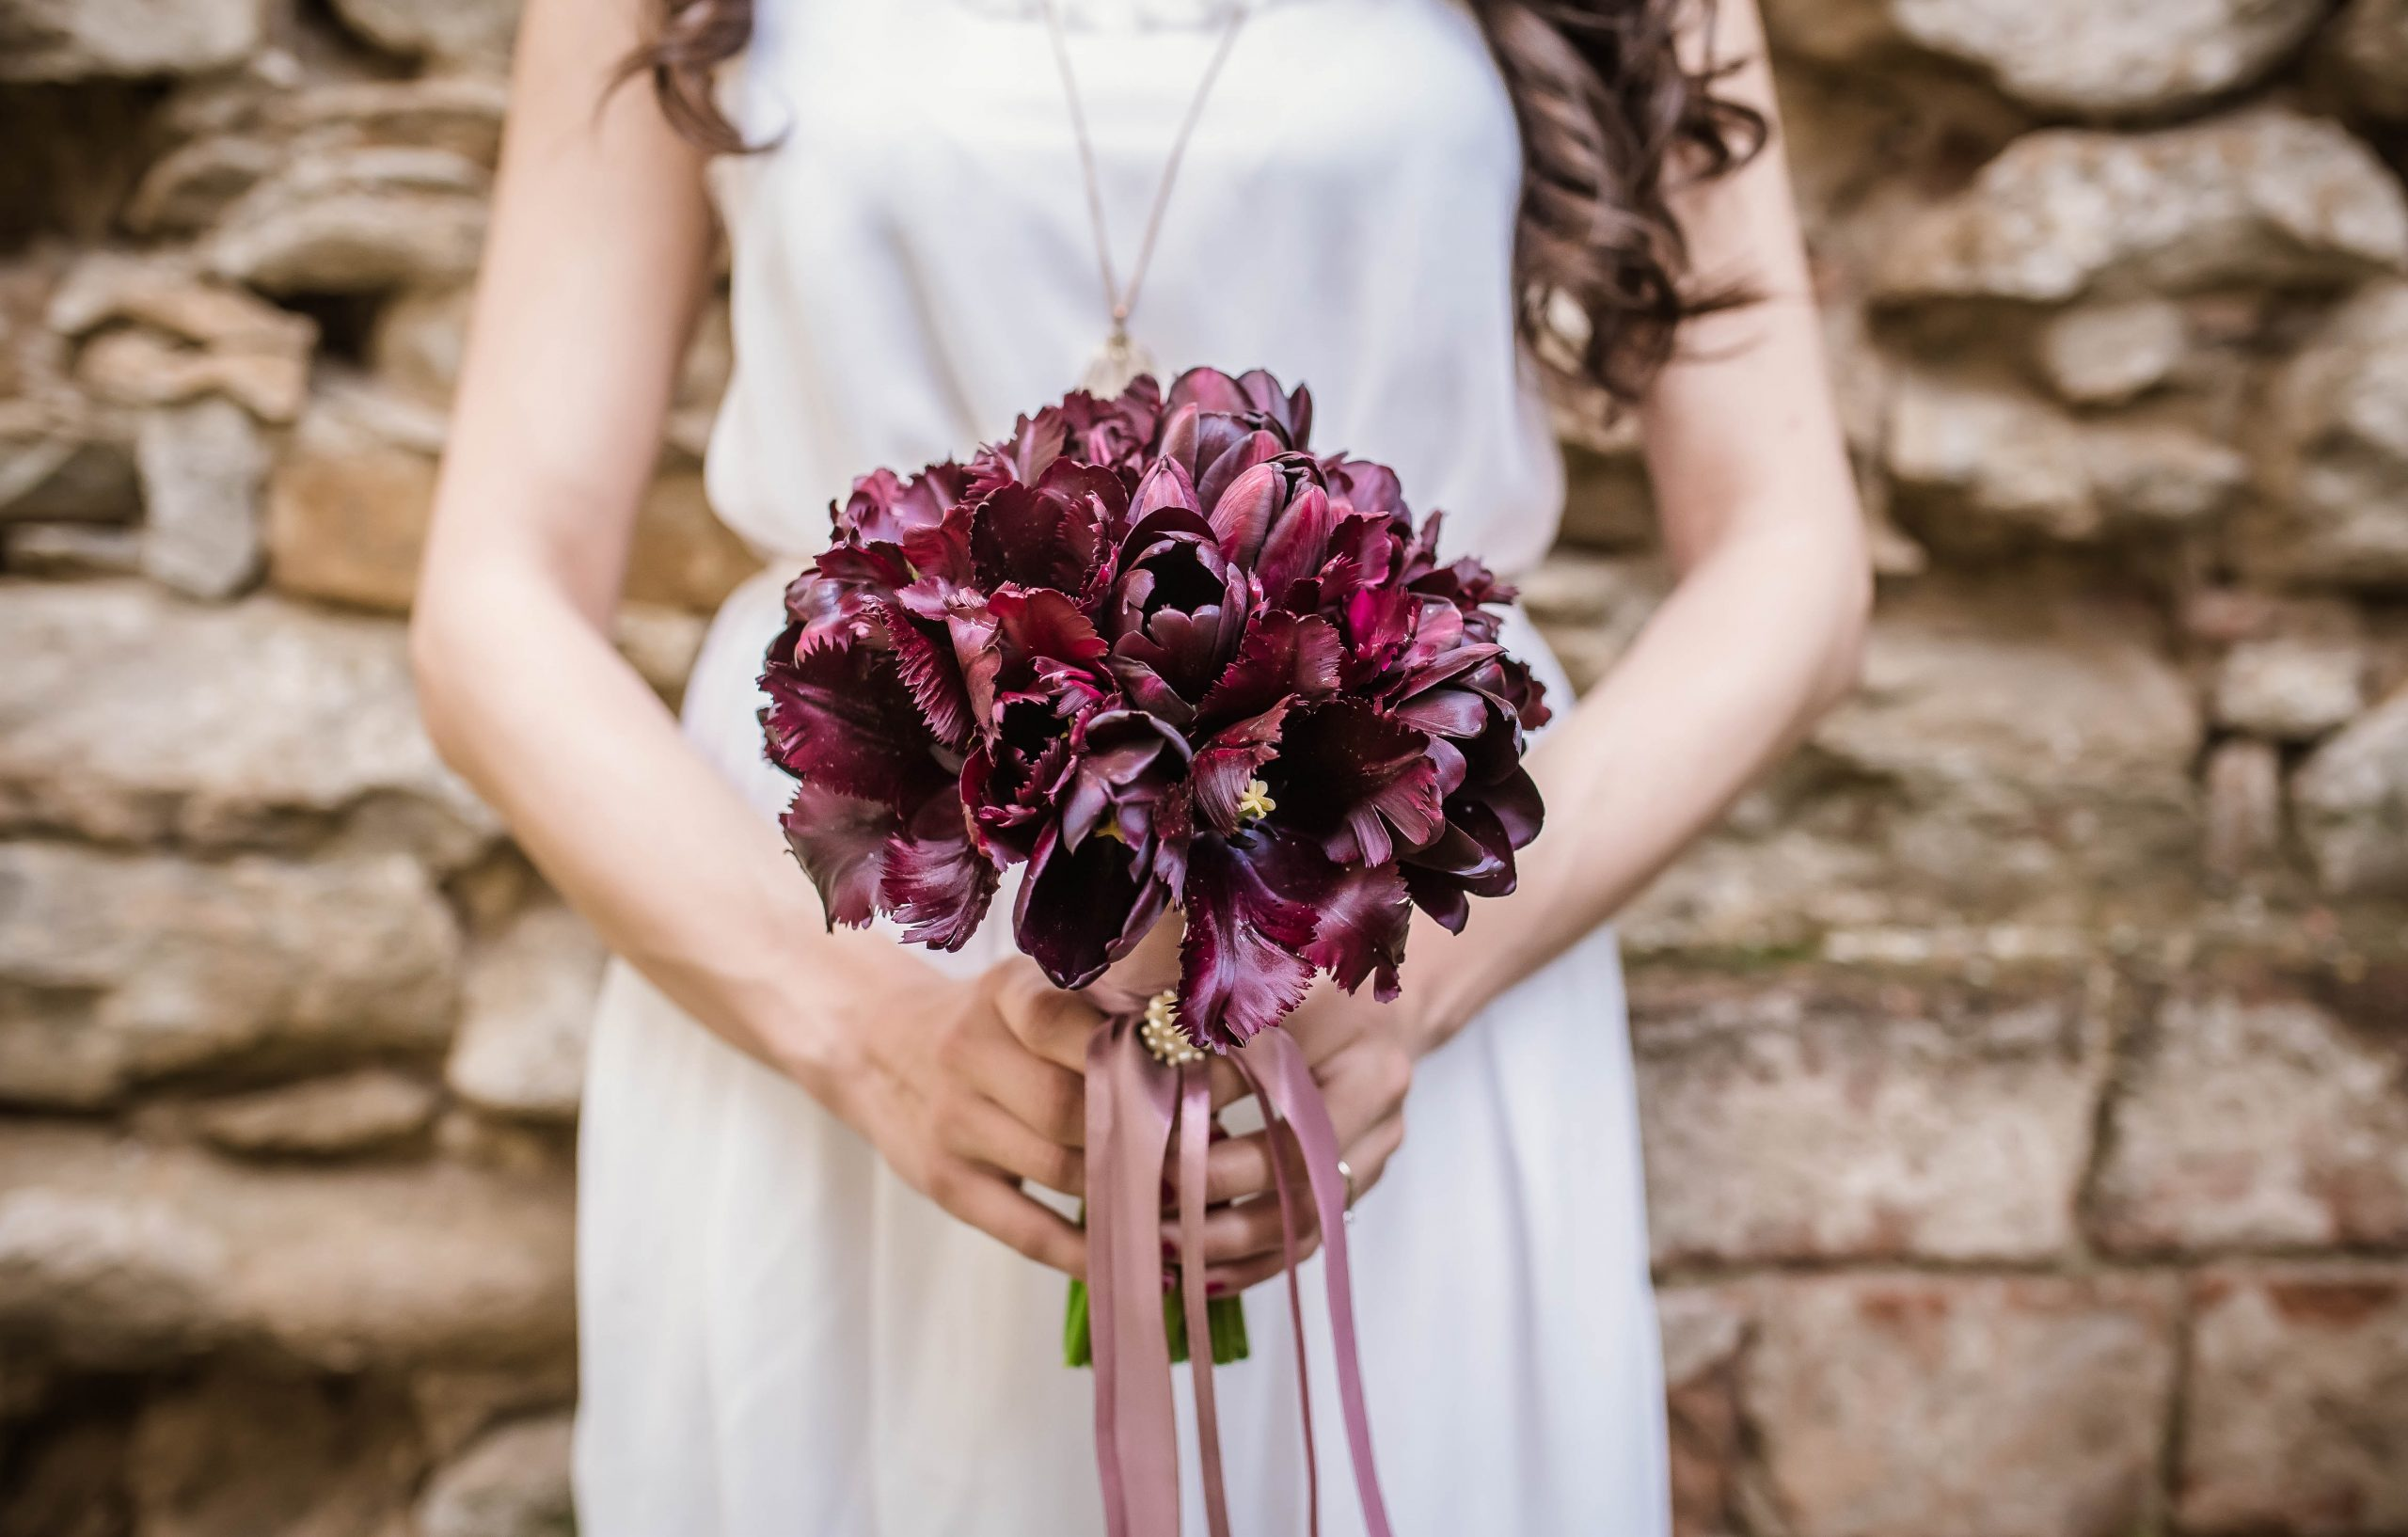 Rustic chic wedding decorations are this year's biggest trend! Not only do they look beautiful, but this rustic chic look means that you can make a majority of the items on this list without a problem. Even the color schemes are amazing!